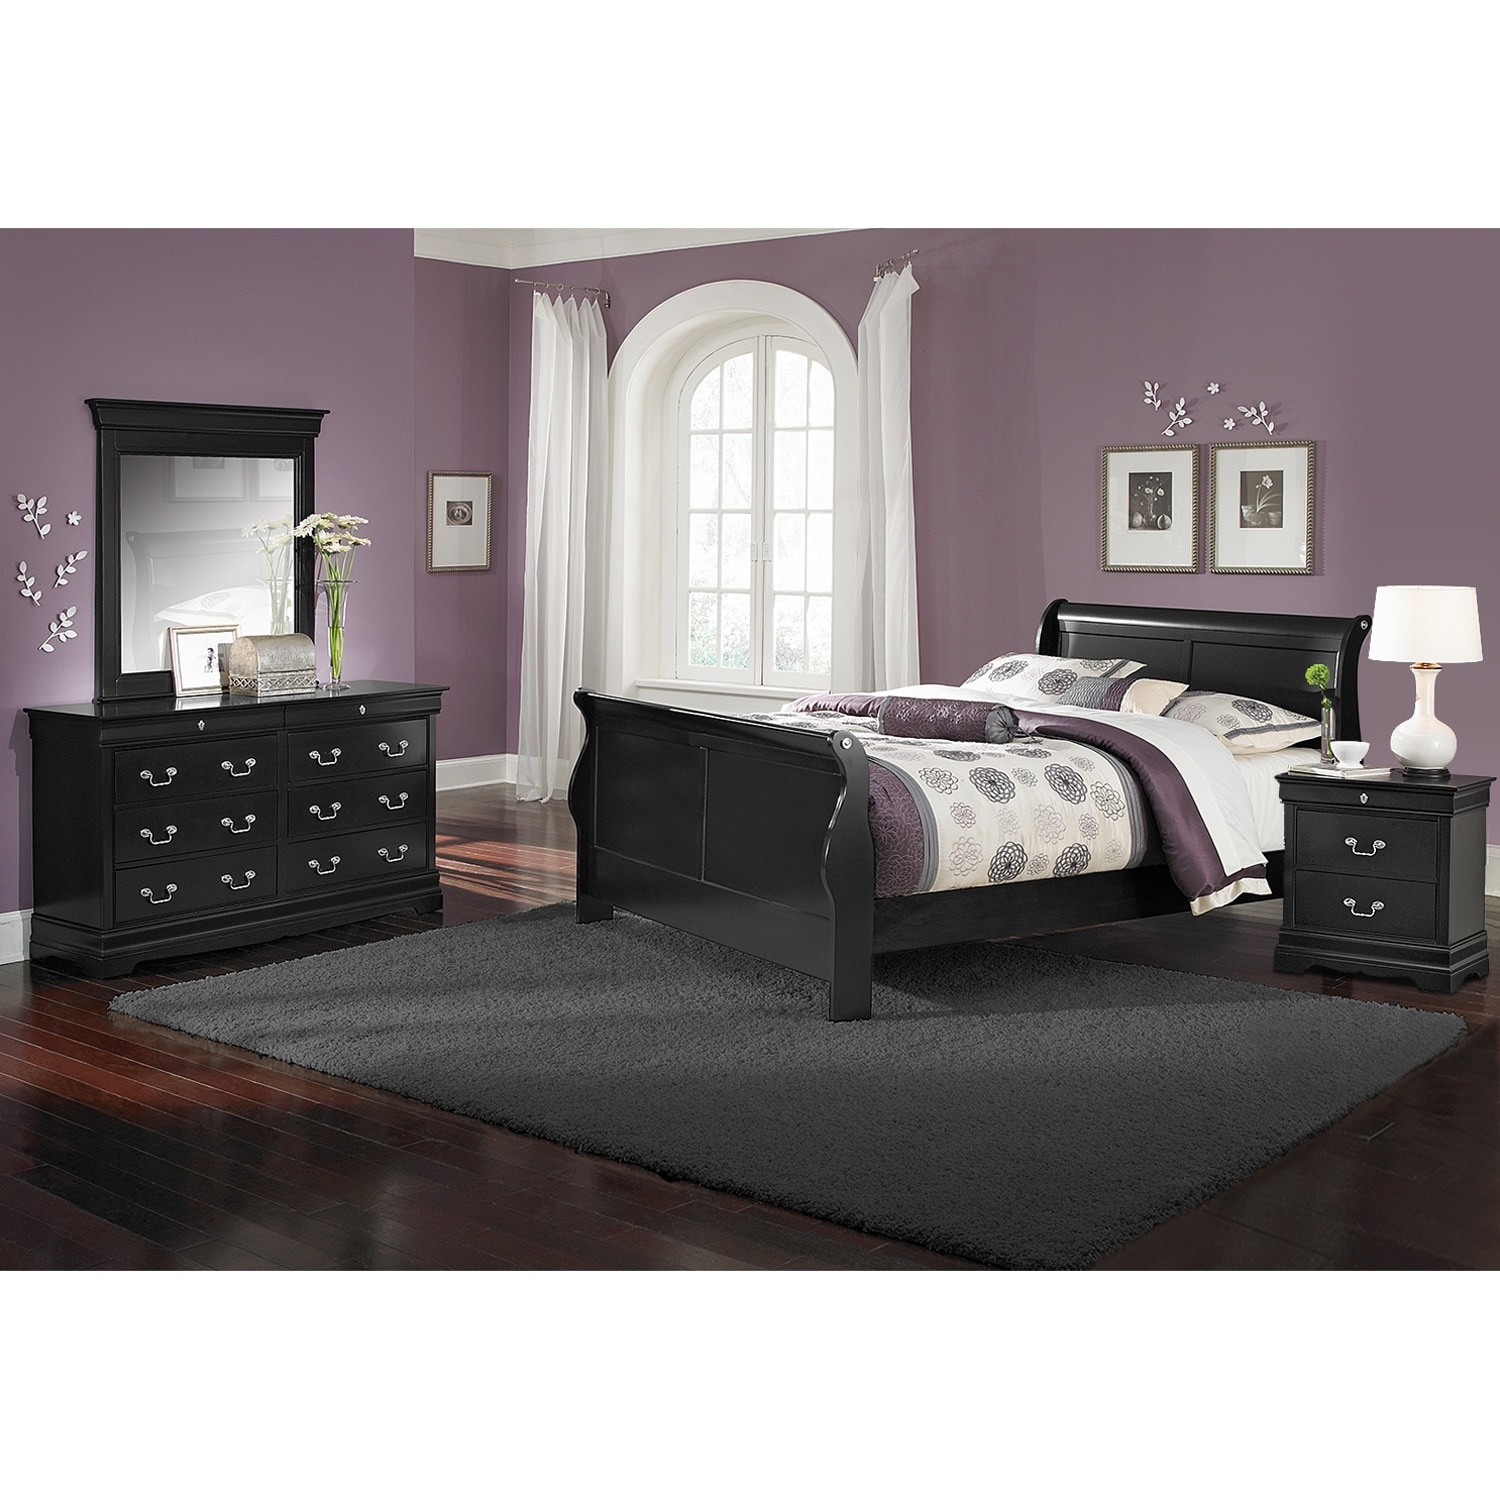 Neo Classic Youth 6-Piece Twin Bedroom Set - Black